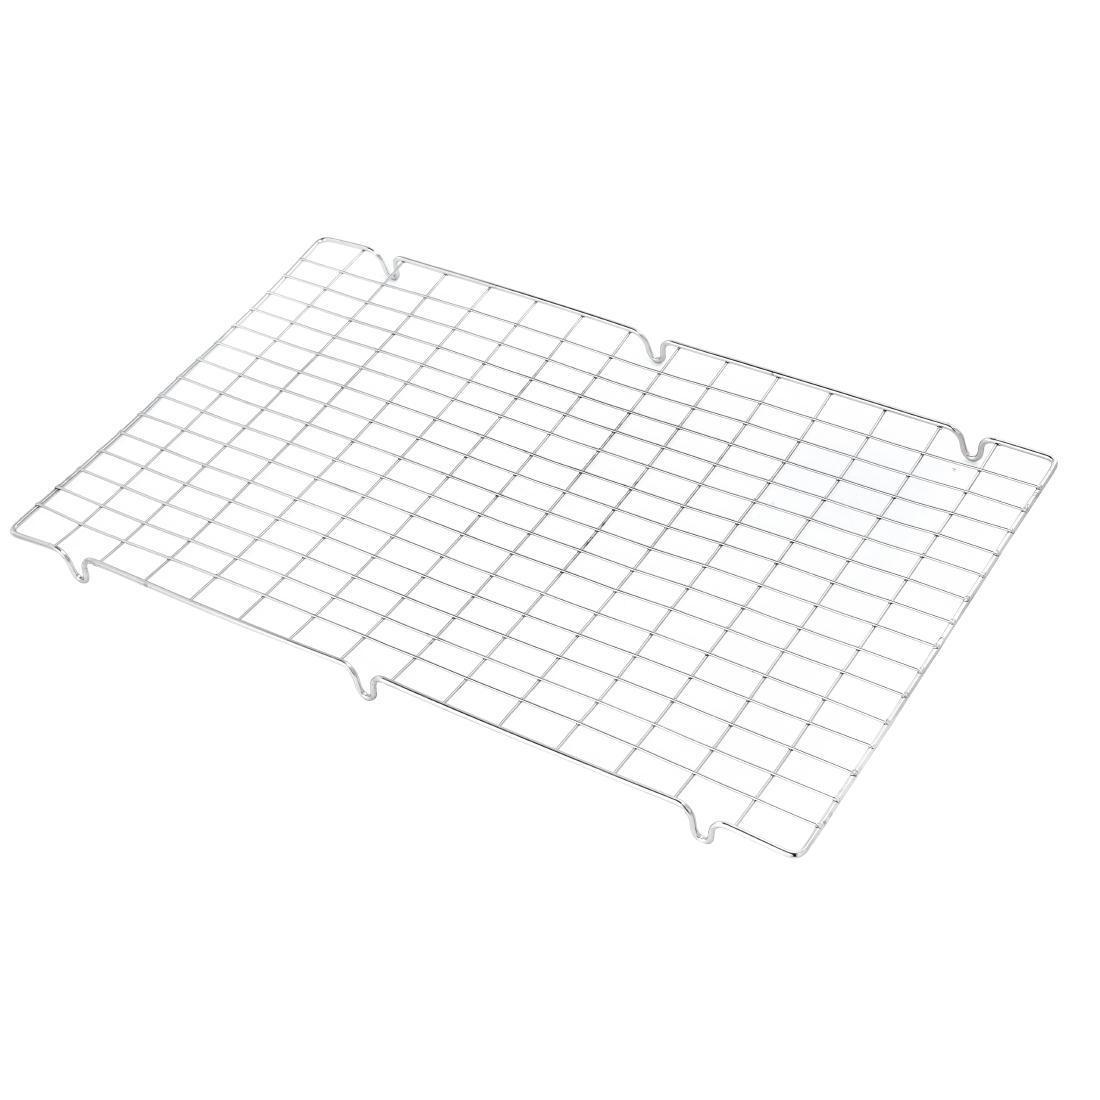 Vogue Cooling Rack 432 x 254mm - Each - J810